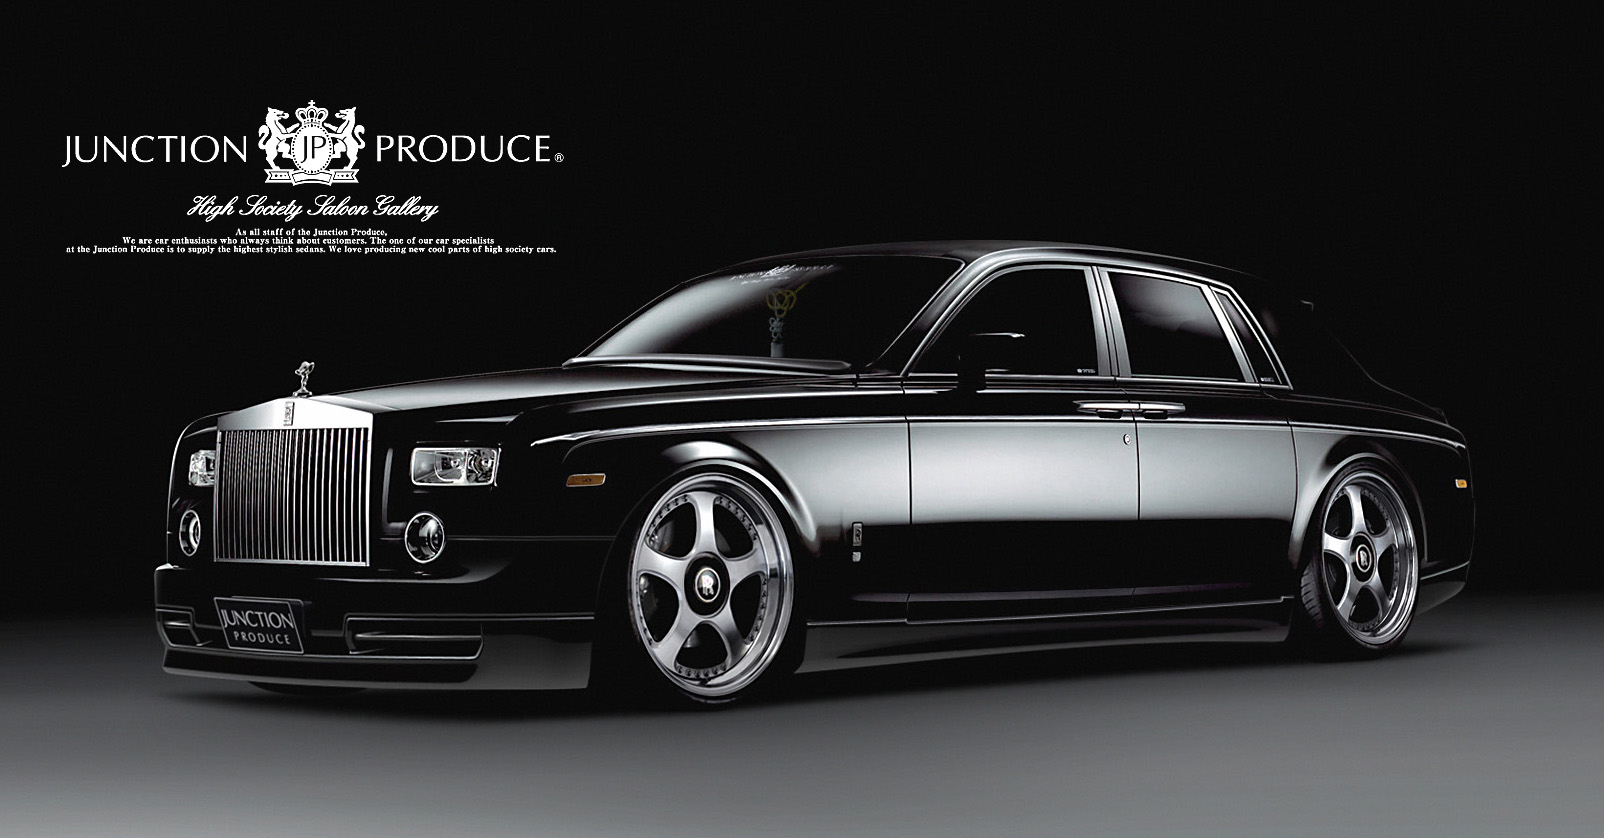 Junction Produce Rolls Royce